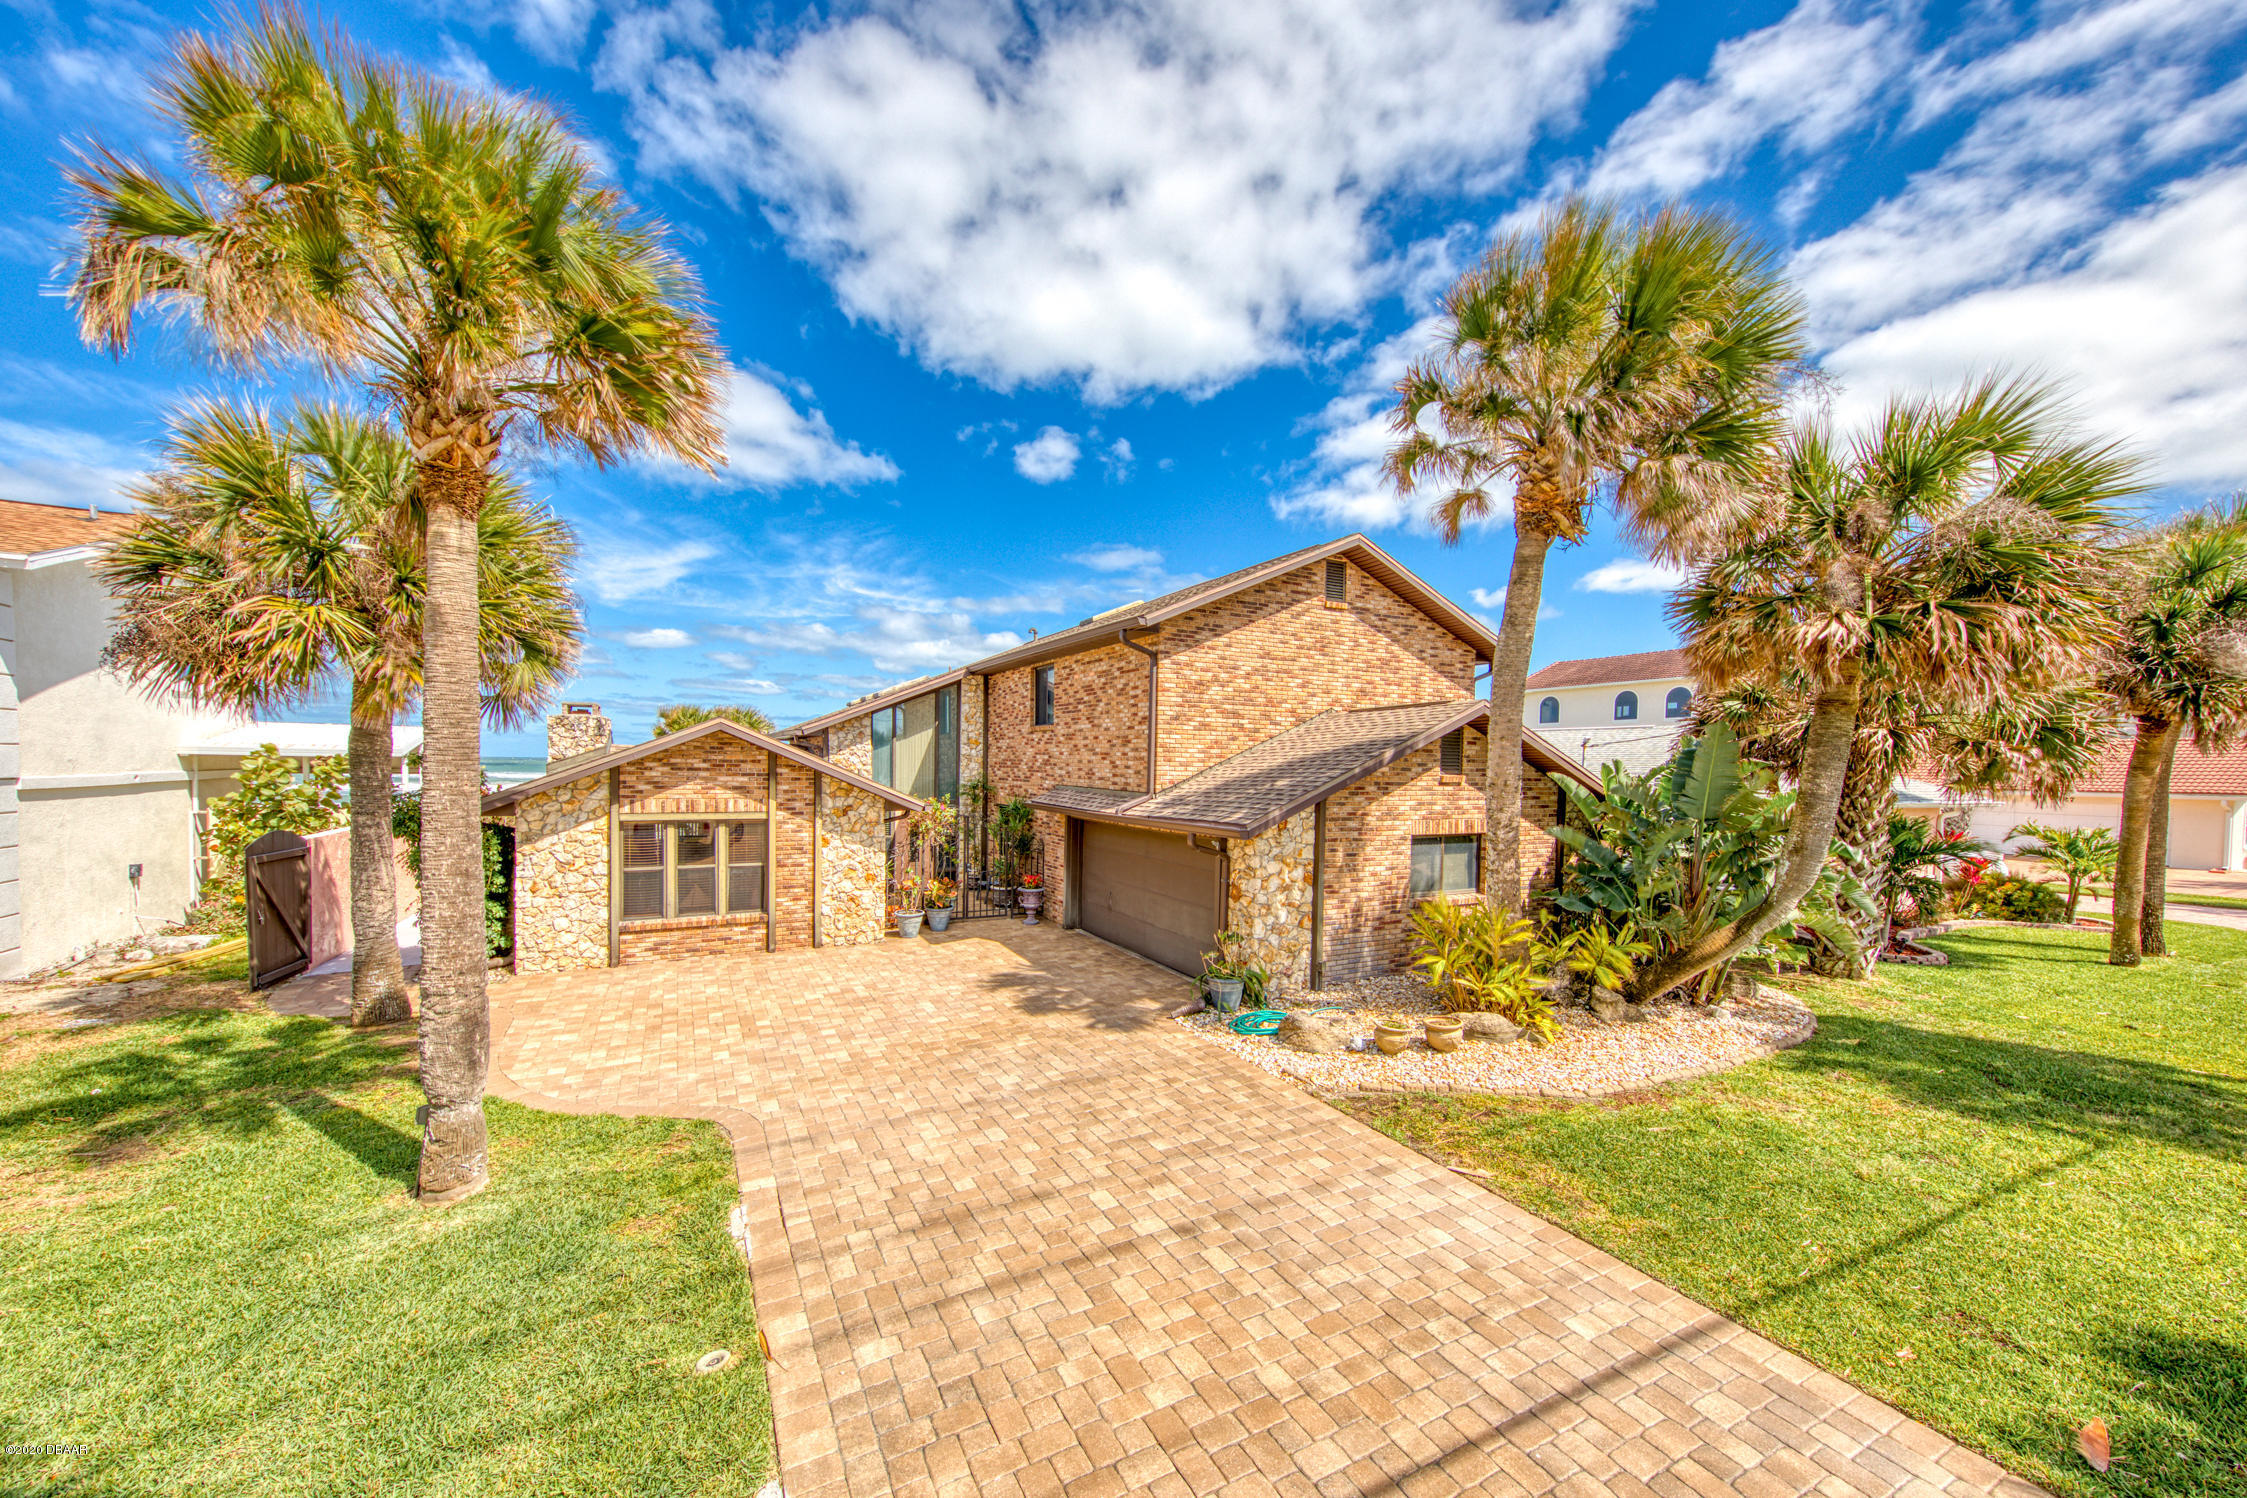 4721 S Atlantic Avenue, one of homes for sale in Ponce Inlet